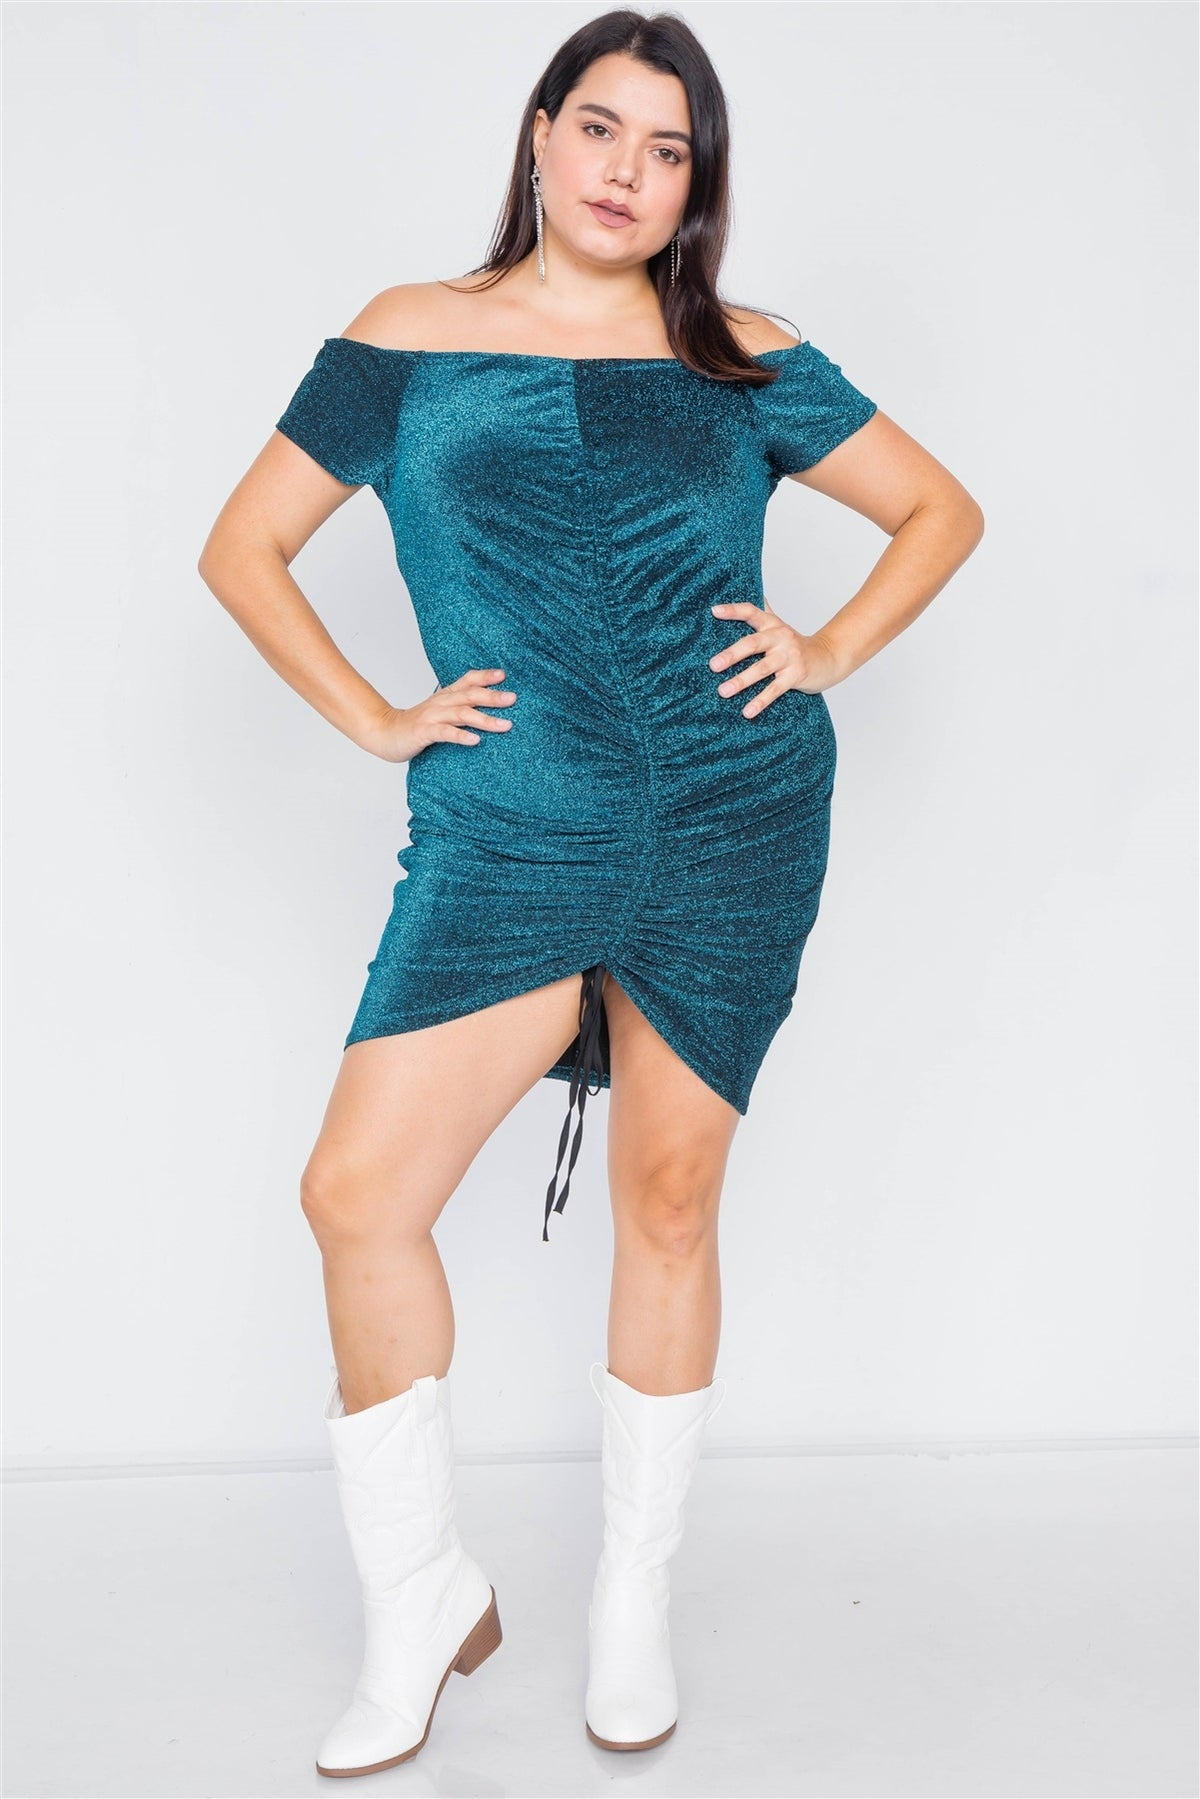 Plus Size Ruched Glitter Dress - Allures From Zenii